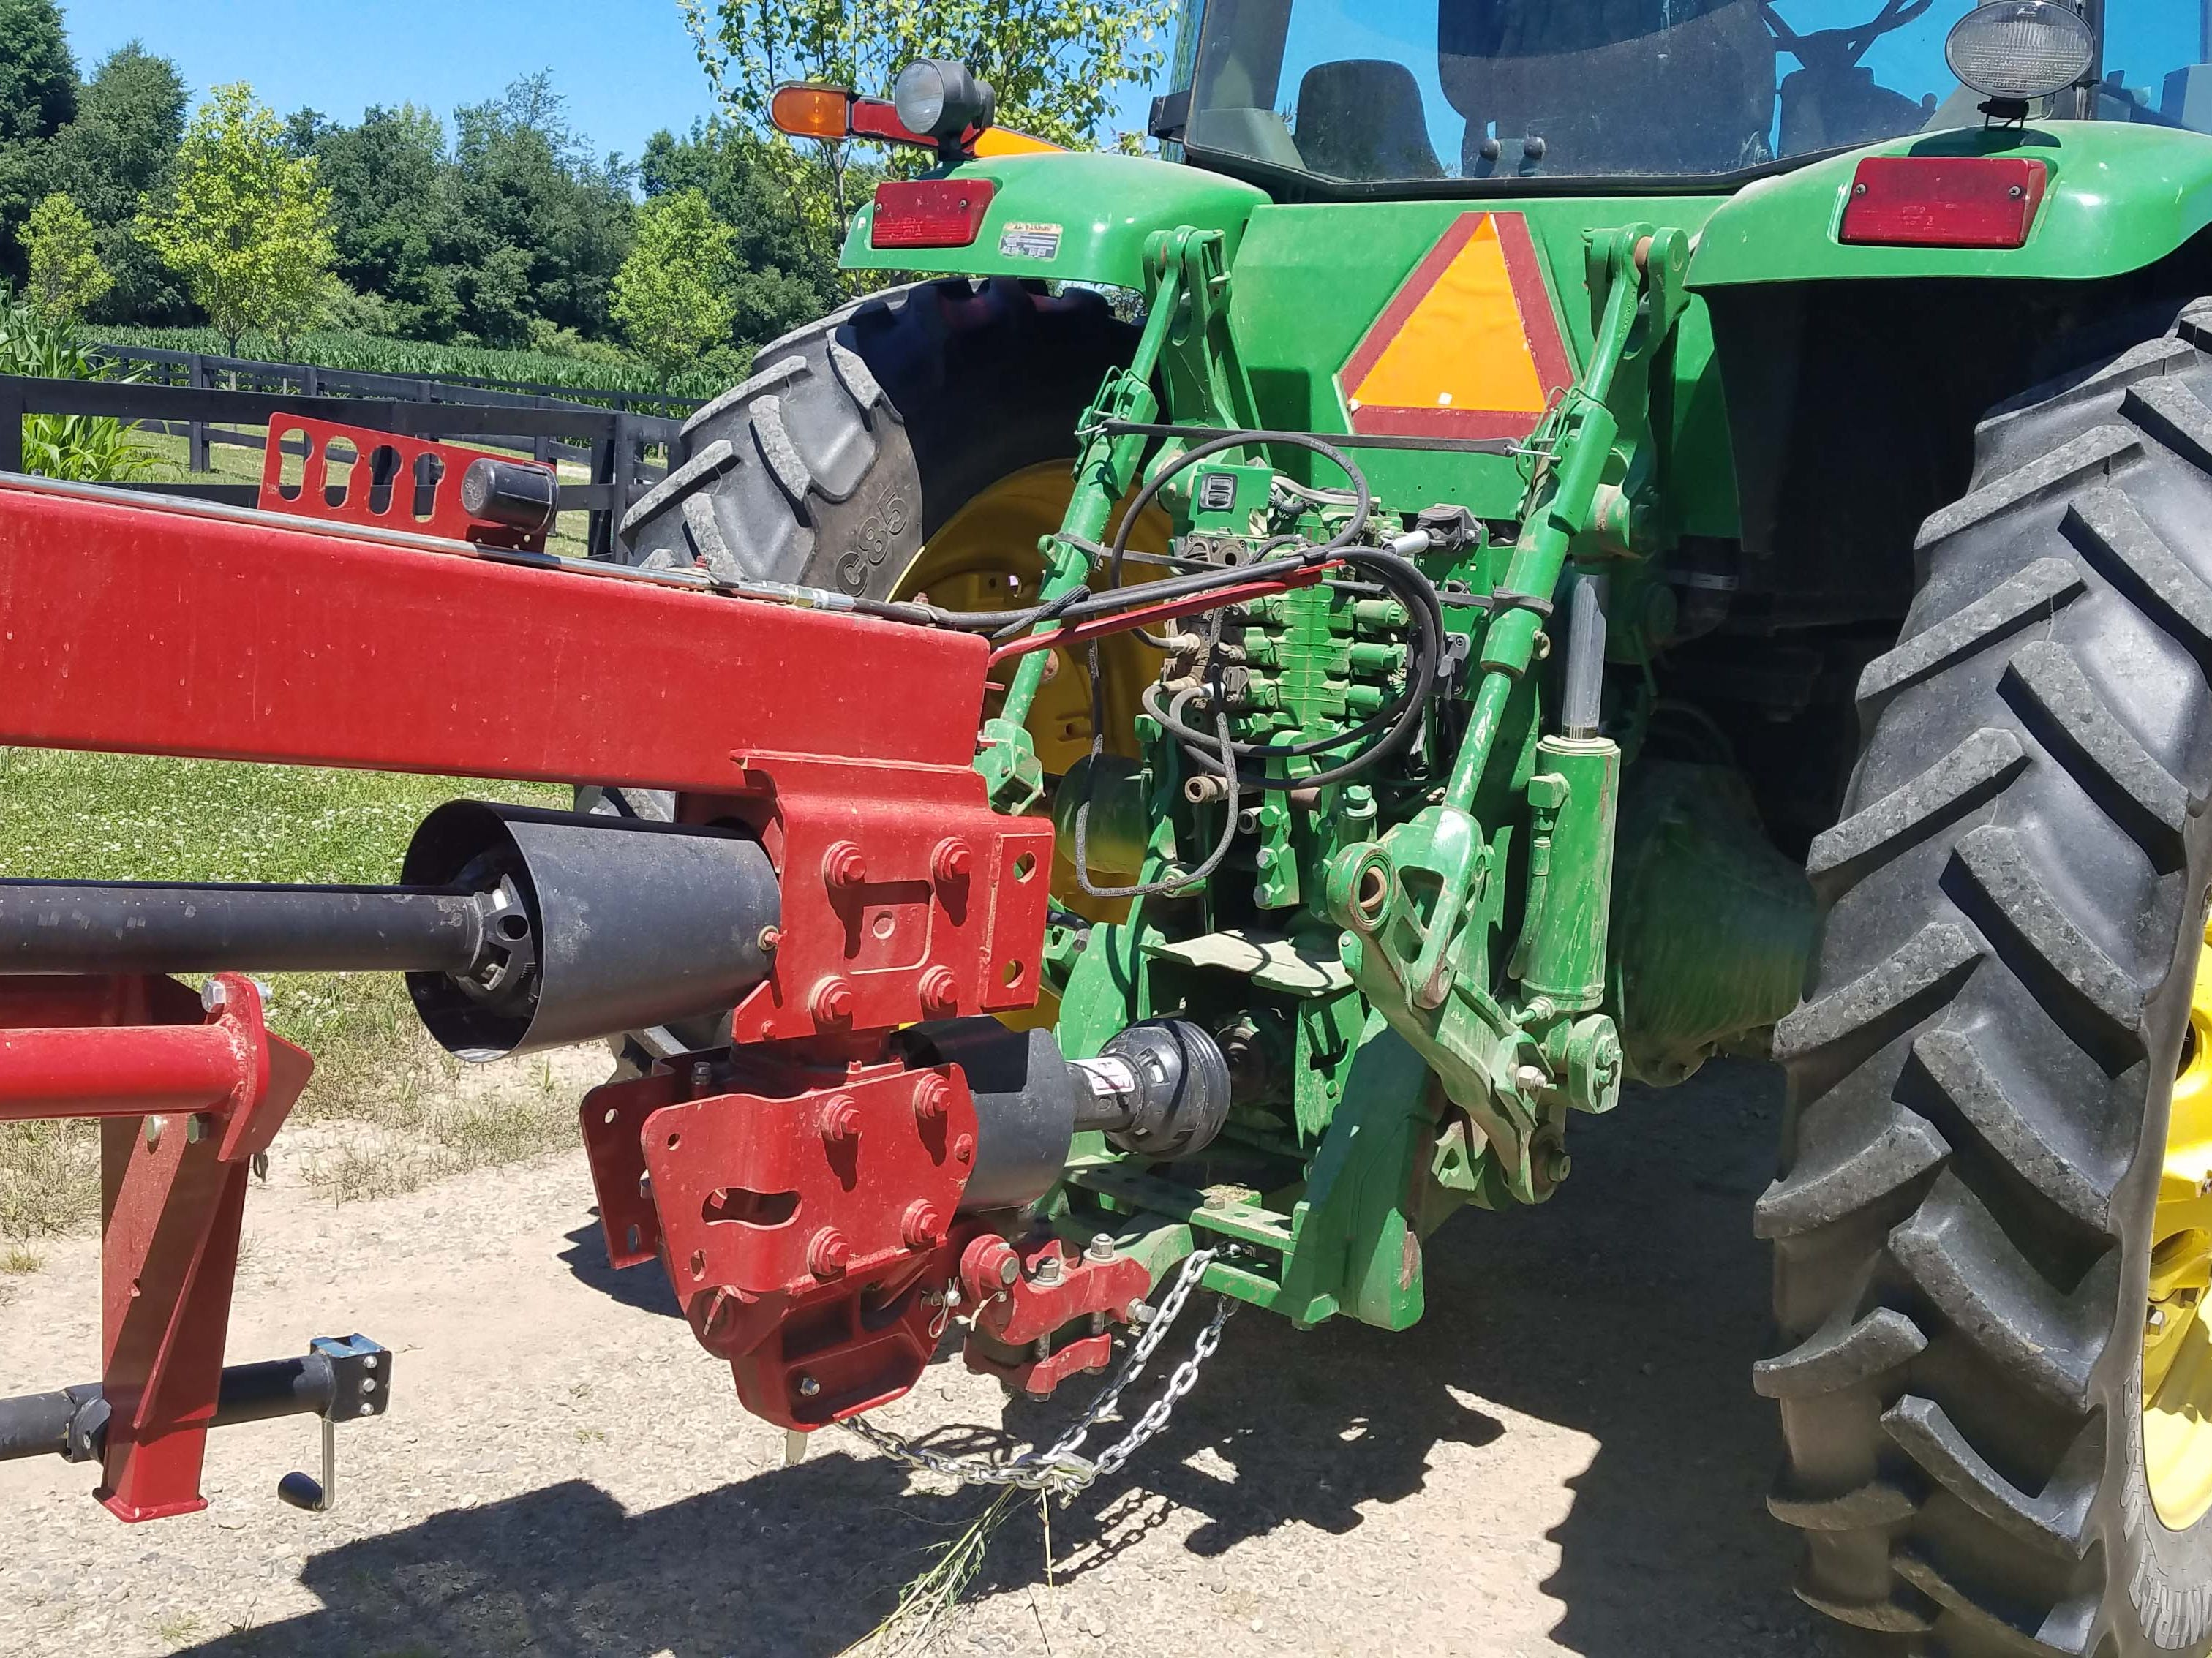 A large, slow John Deere tractor is hooked up to a grass-cutting farm accessory. The Lamborghini Nitro comes equipped for similar duty, but is also useful for front loader-equipped chores that need more speed.